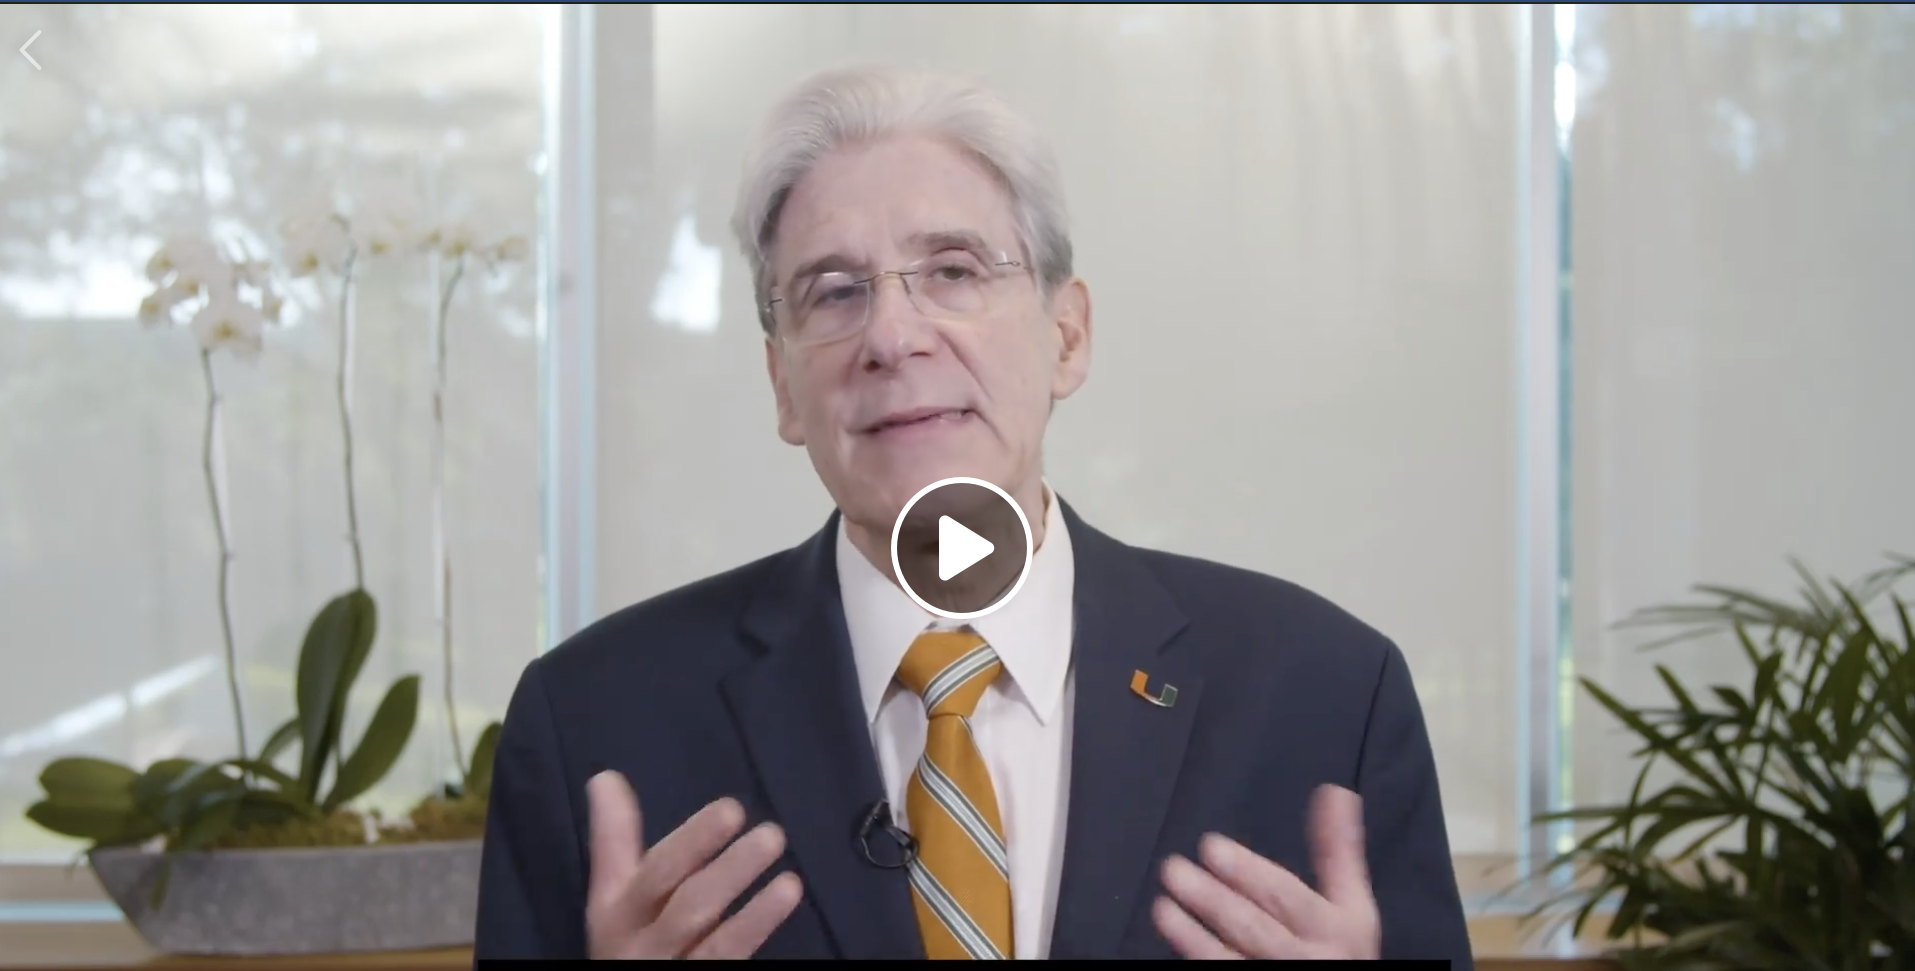 A video message to the University of Miami community from President Julio Frenk on the Coronavirus